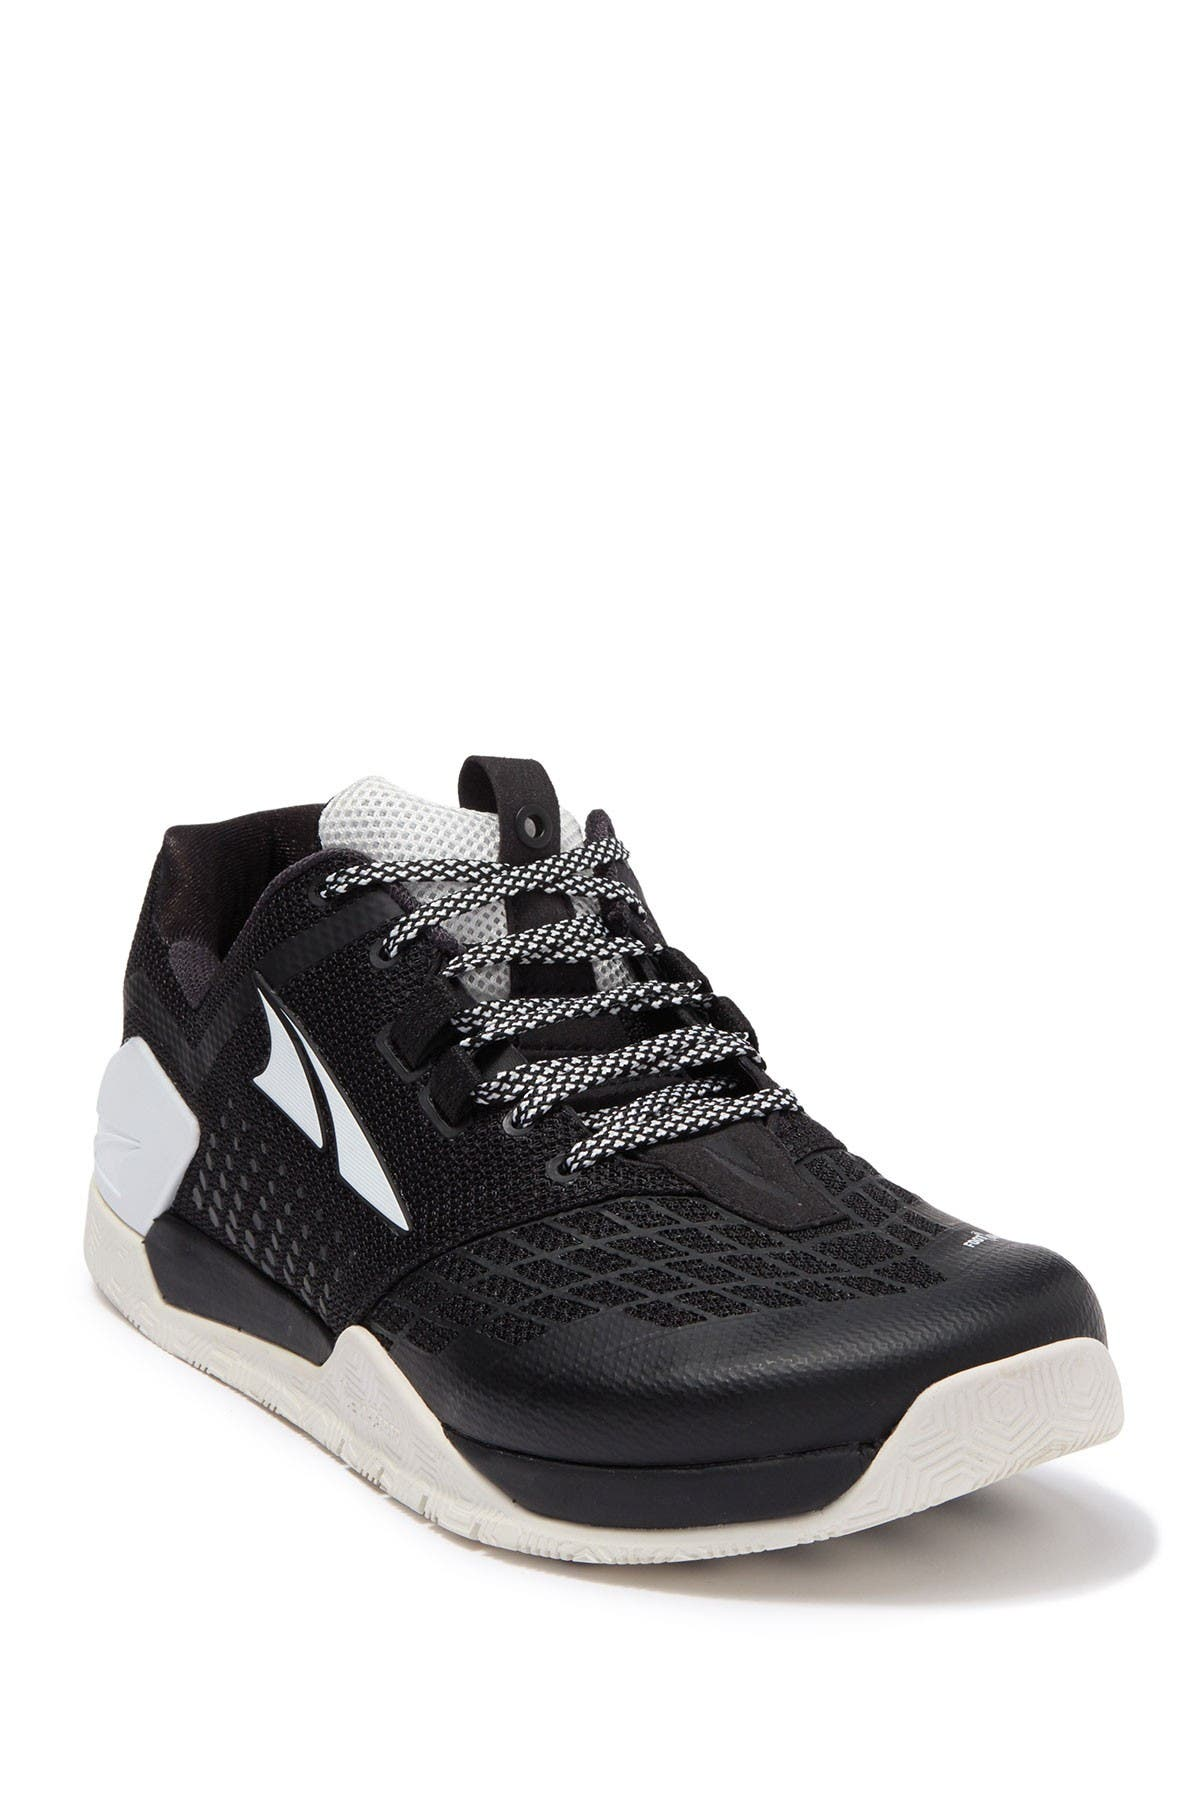 Image of ALTRA Hiit XT 2 Sneaker